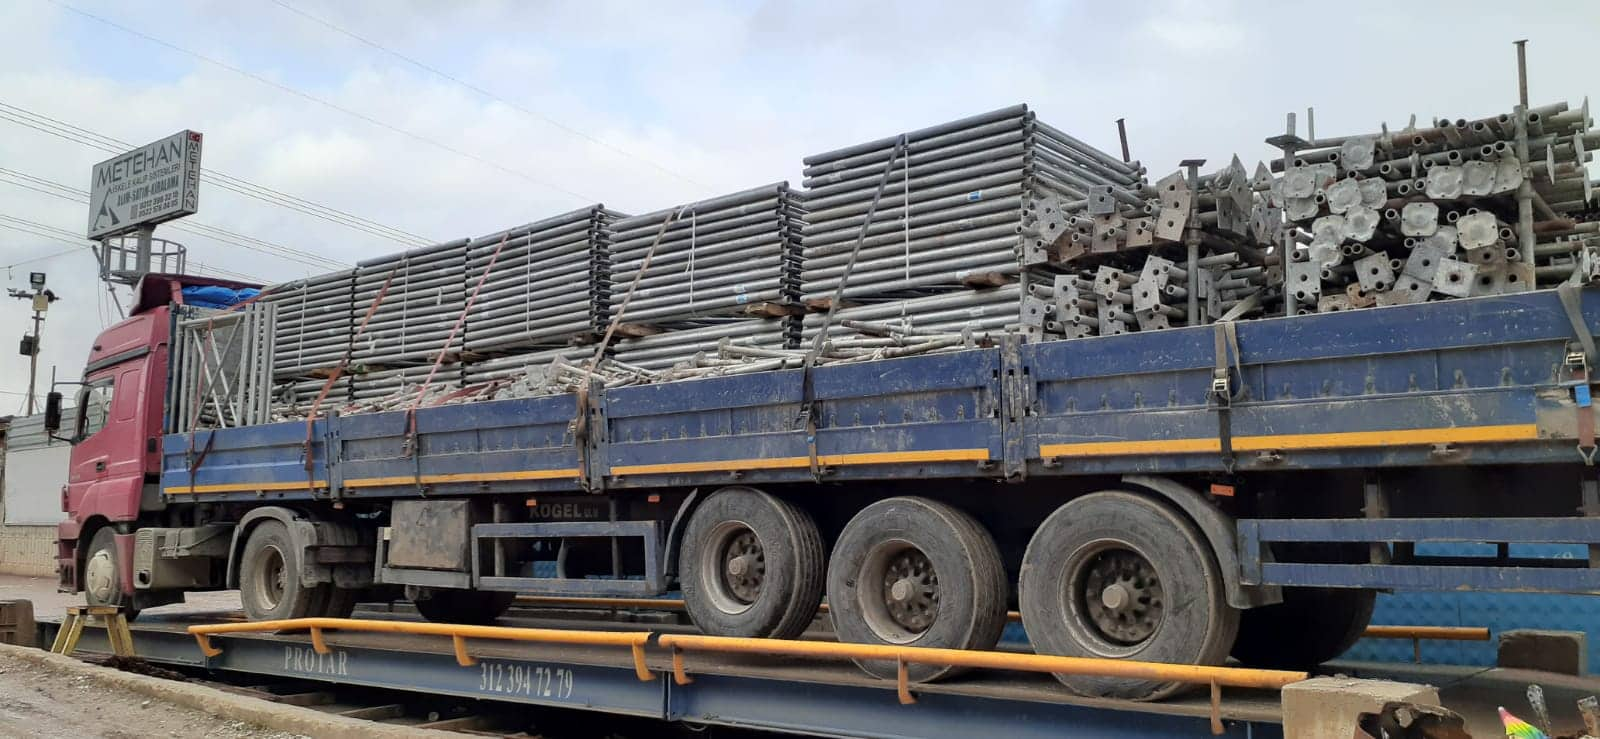 2nd Hand Galvanized Formwork Under Table Scaffolding (Tms Brand) 2nd SHIPMENT!